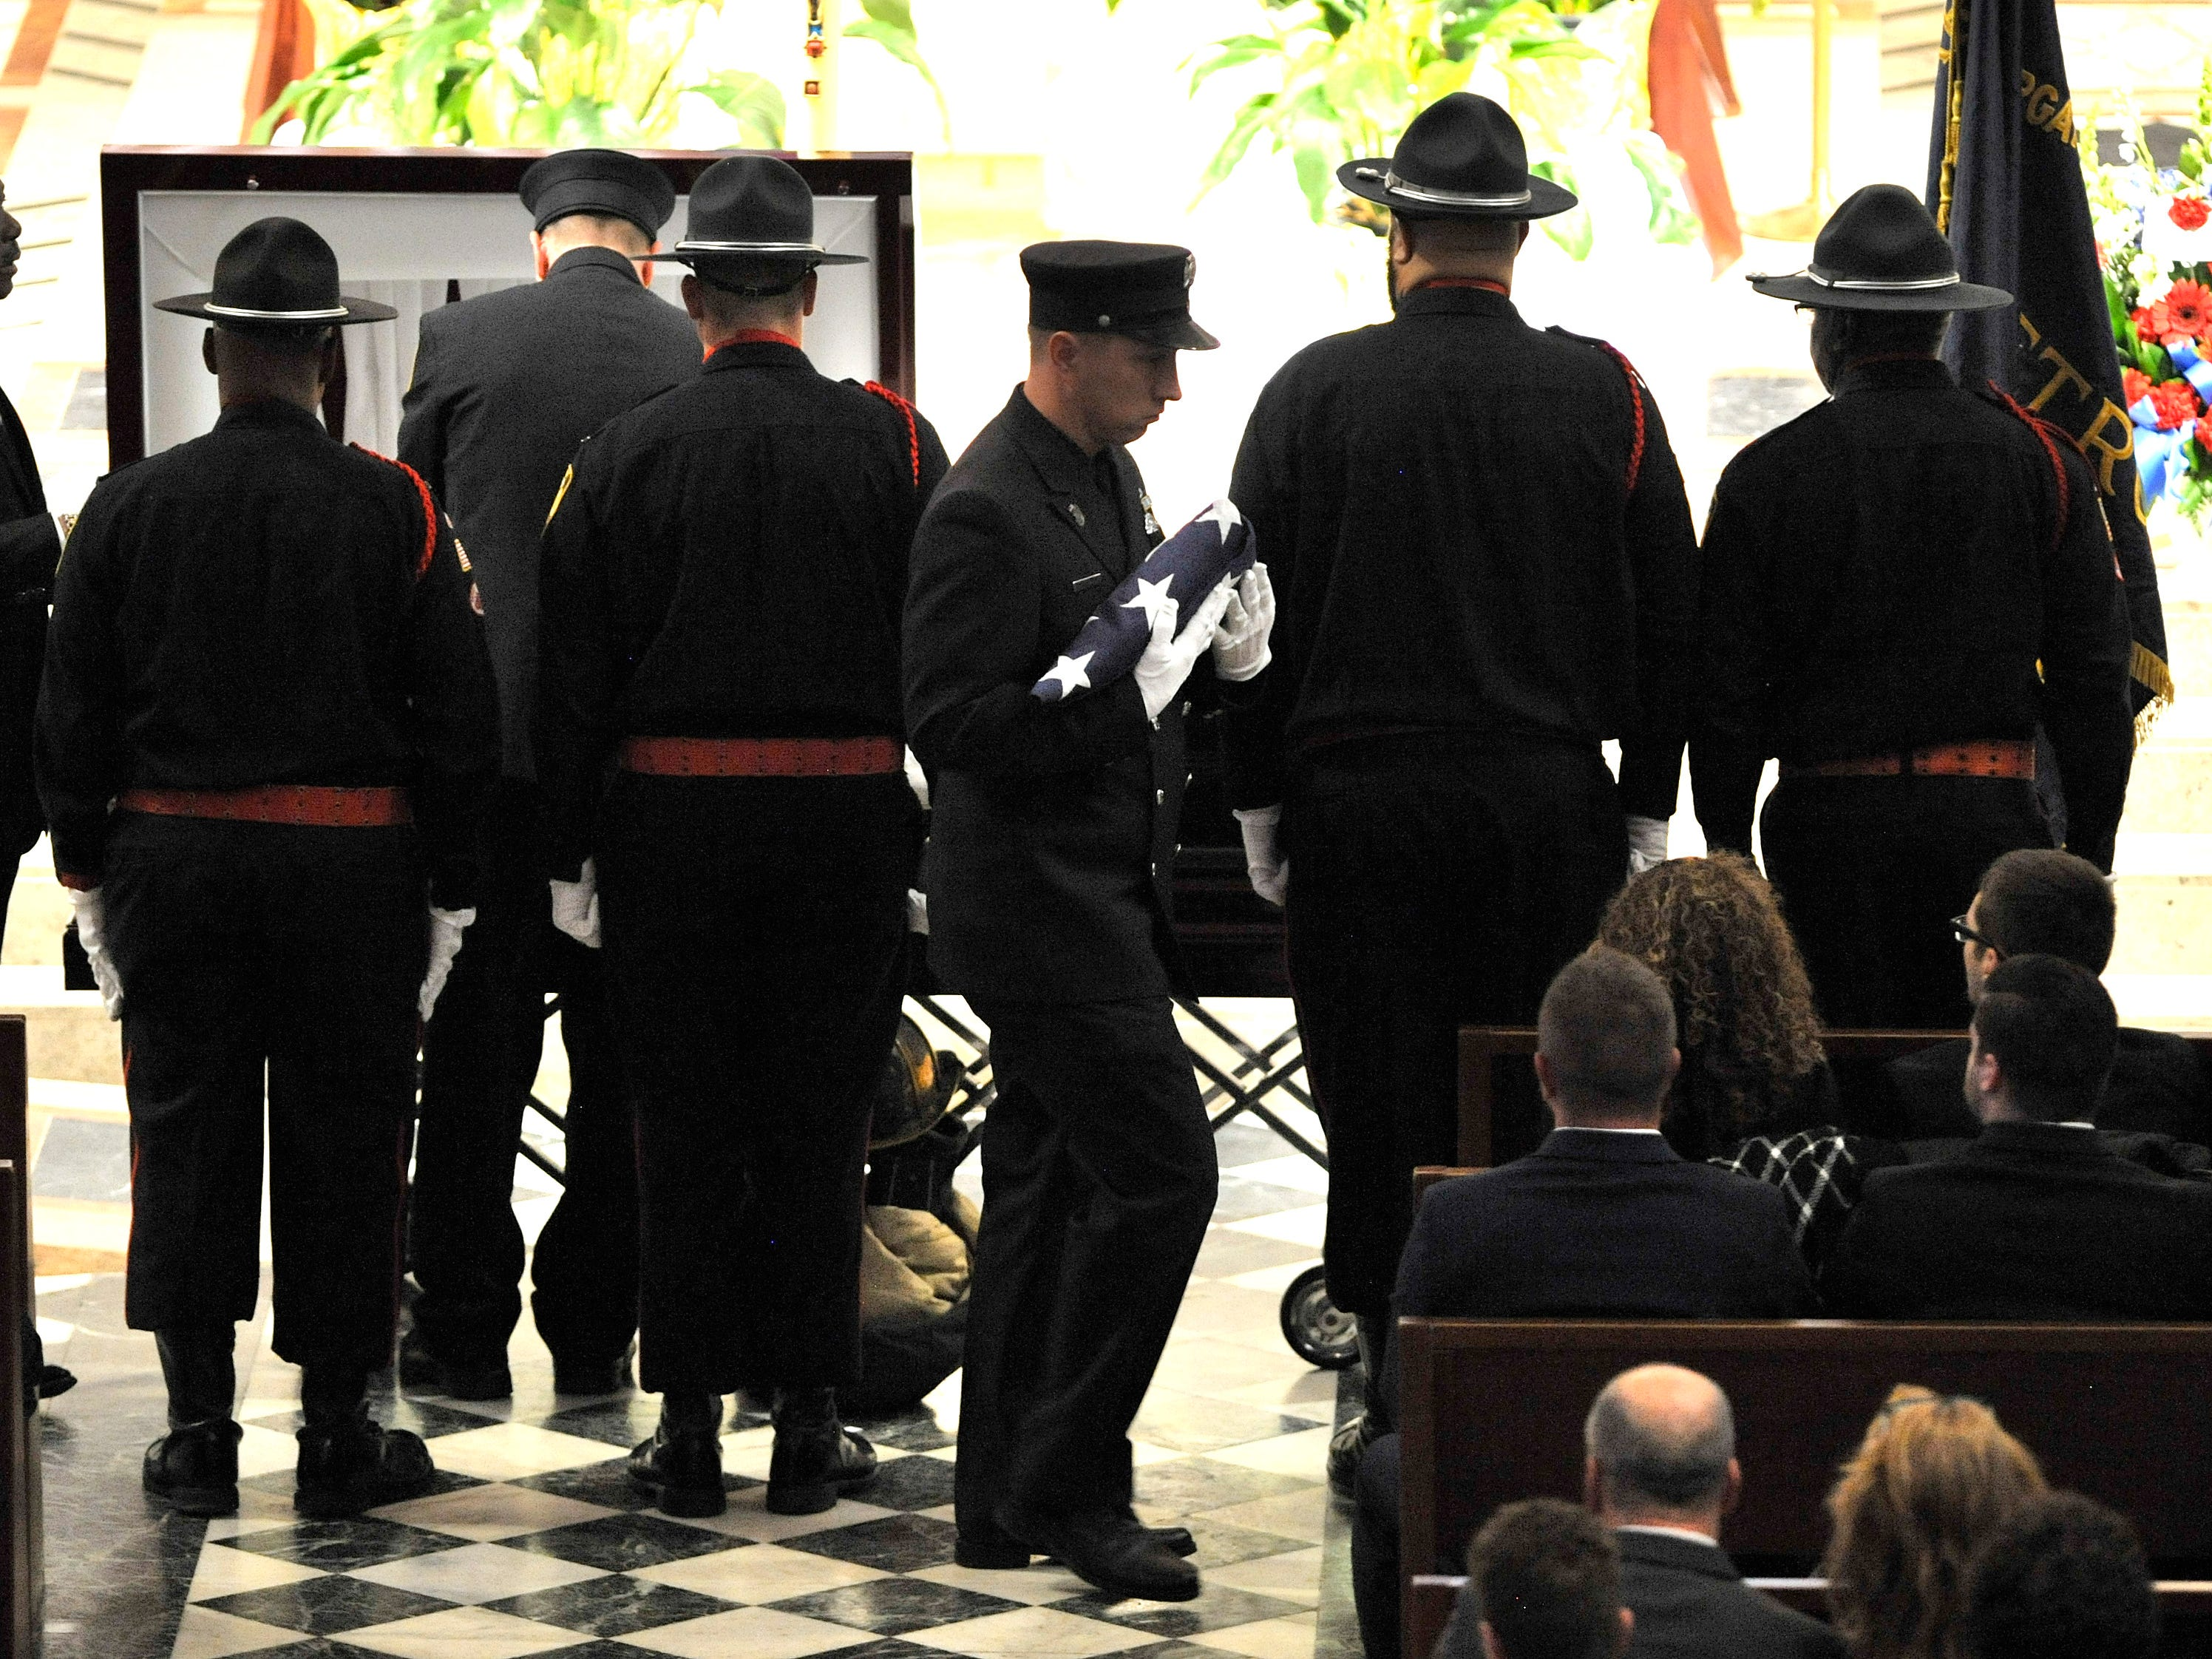 A firefighter carries the U.S. flag to present it to a family member before the casket is closed.